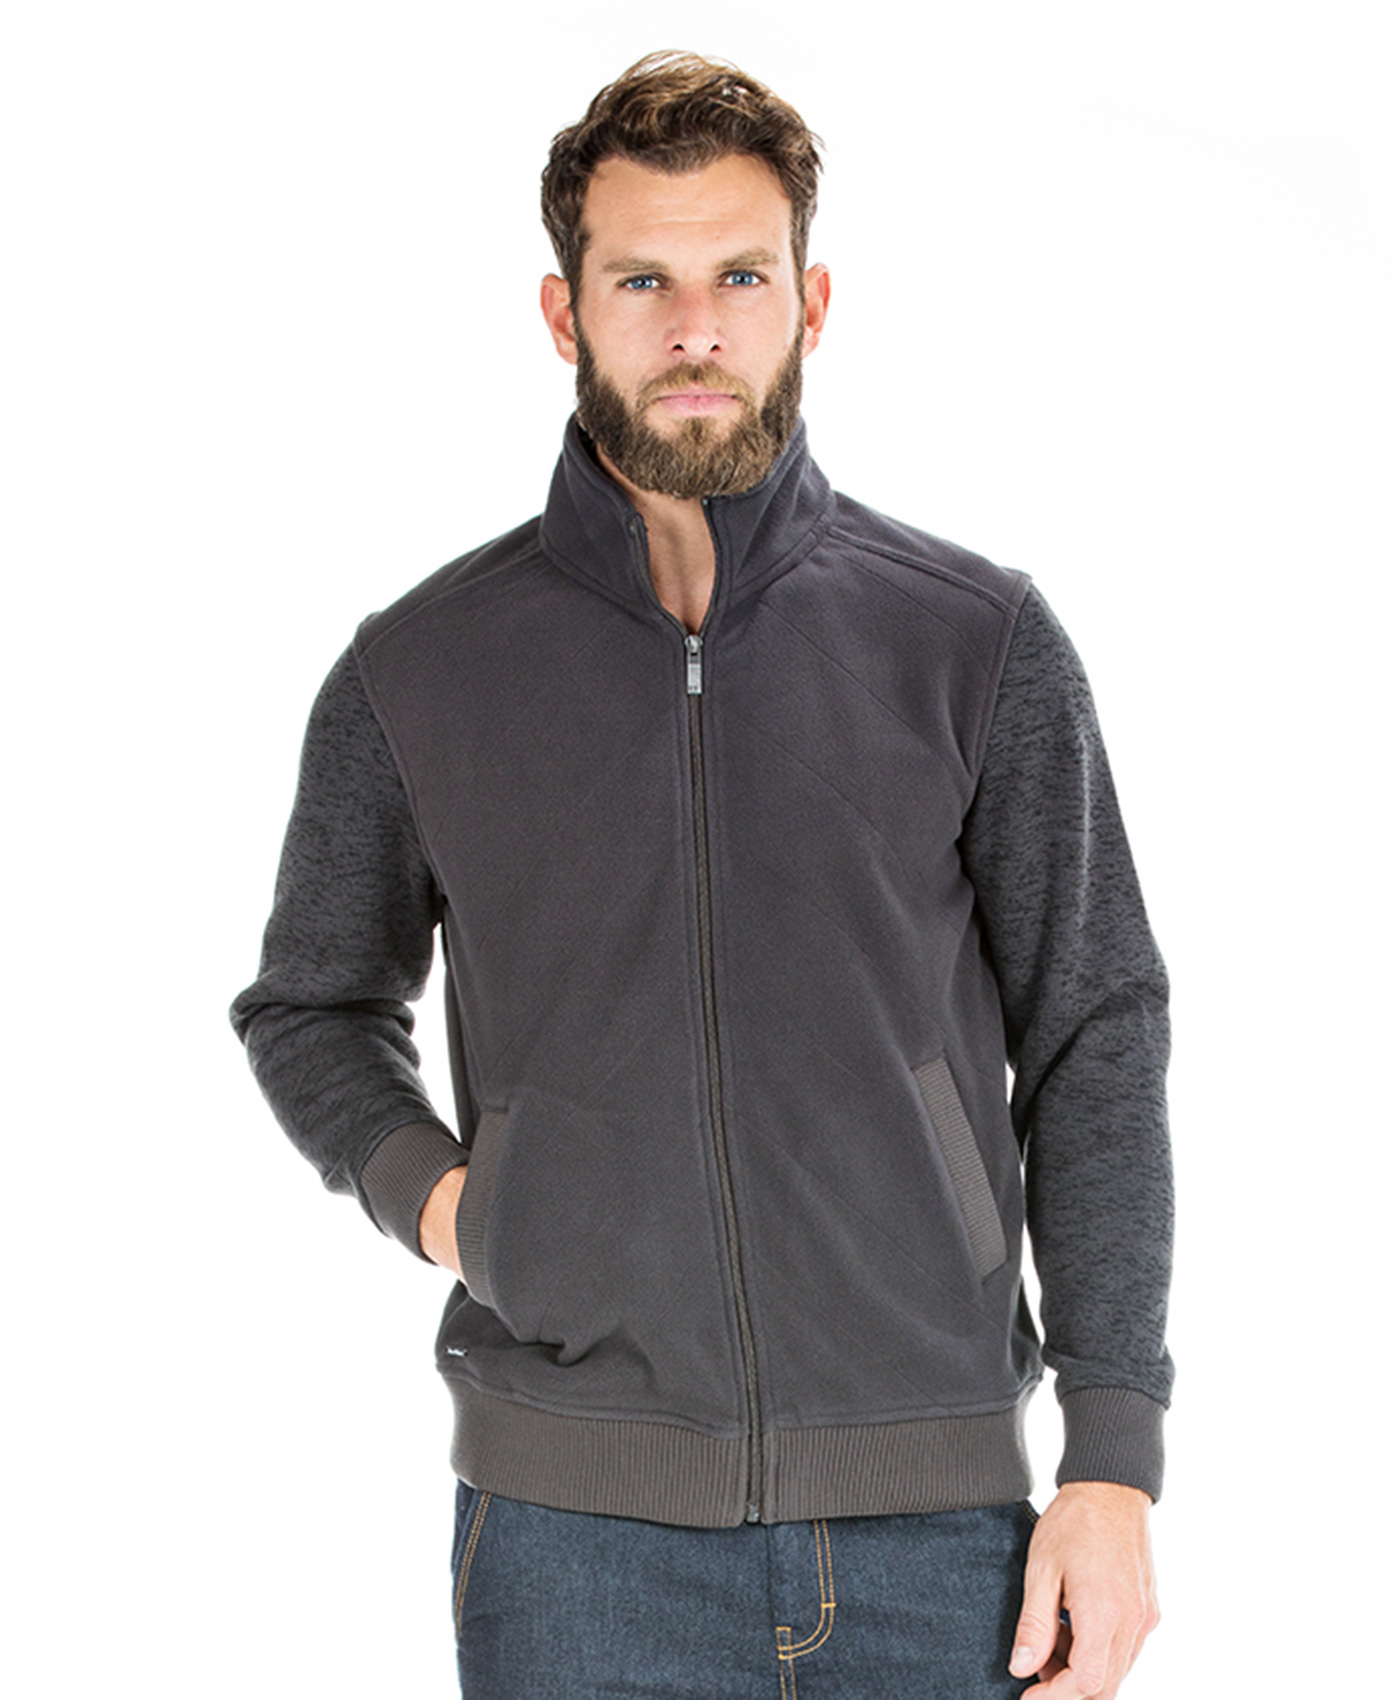 Polaire grise homme - Mode marine Homme